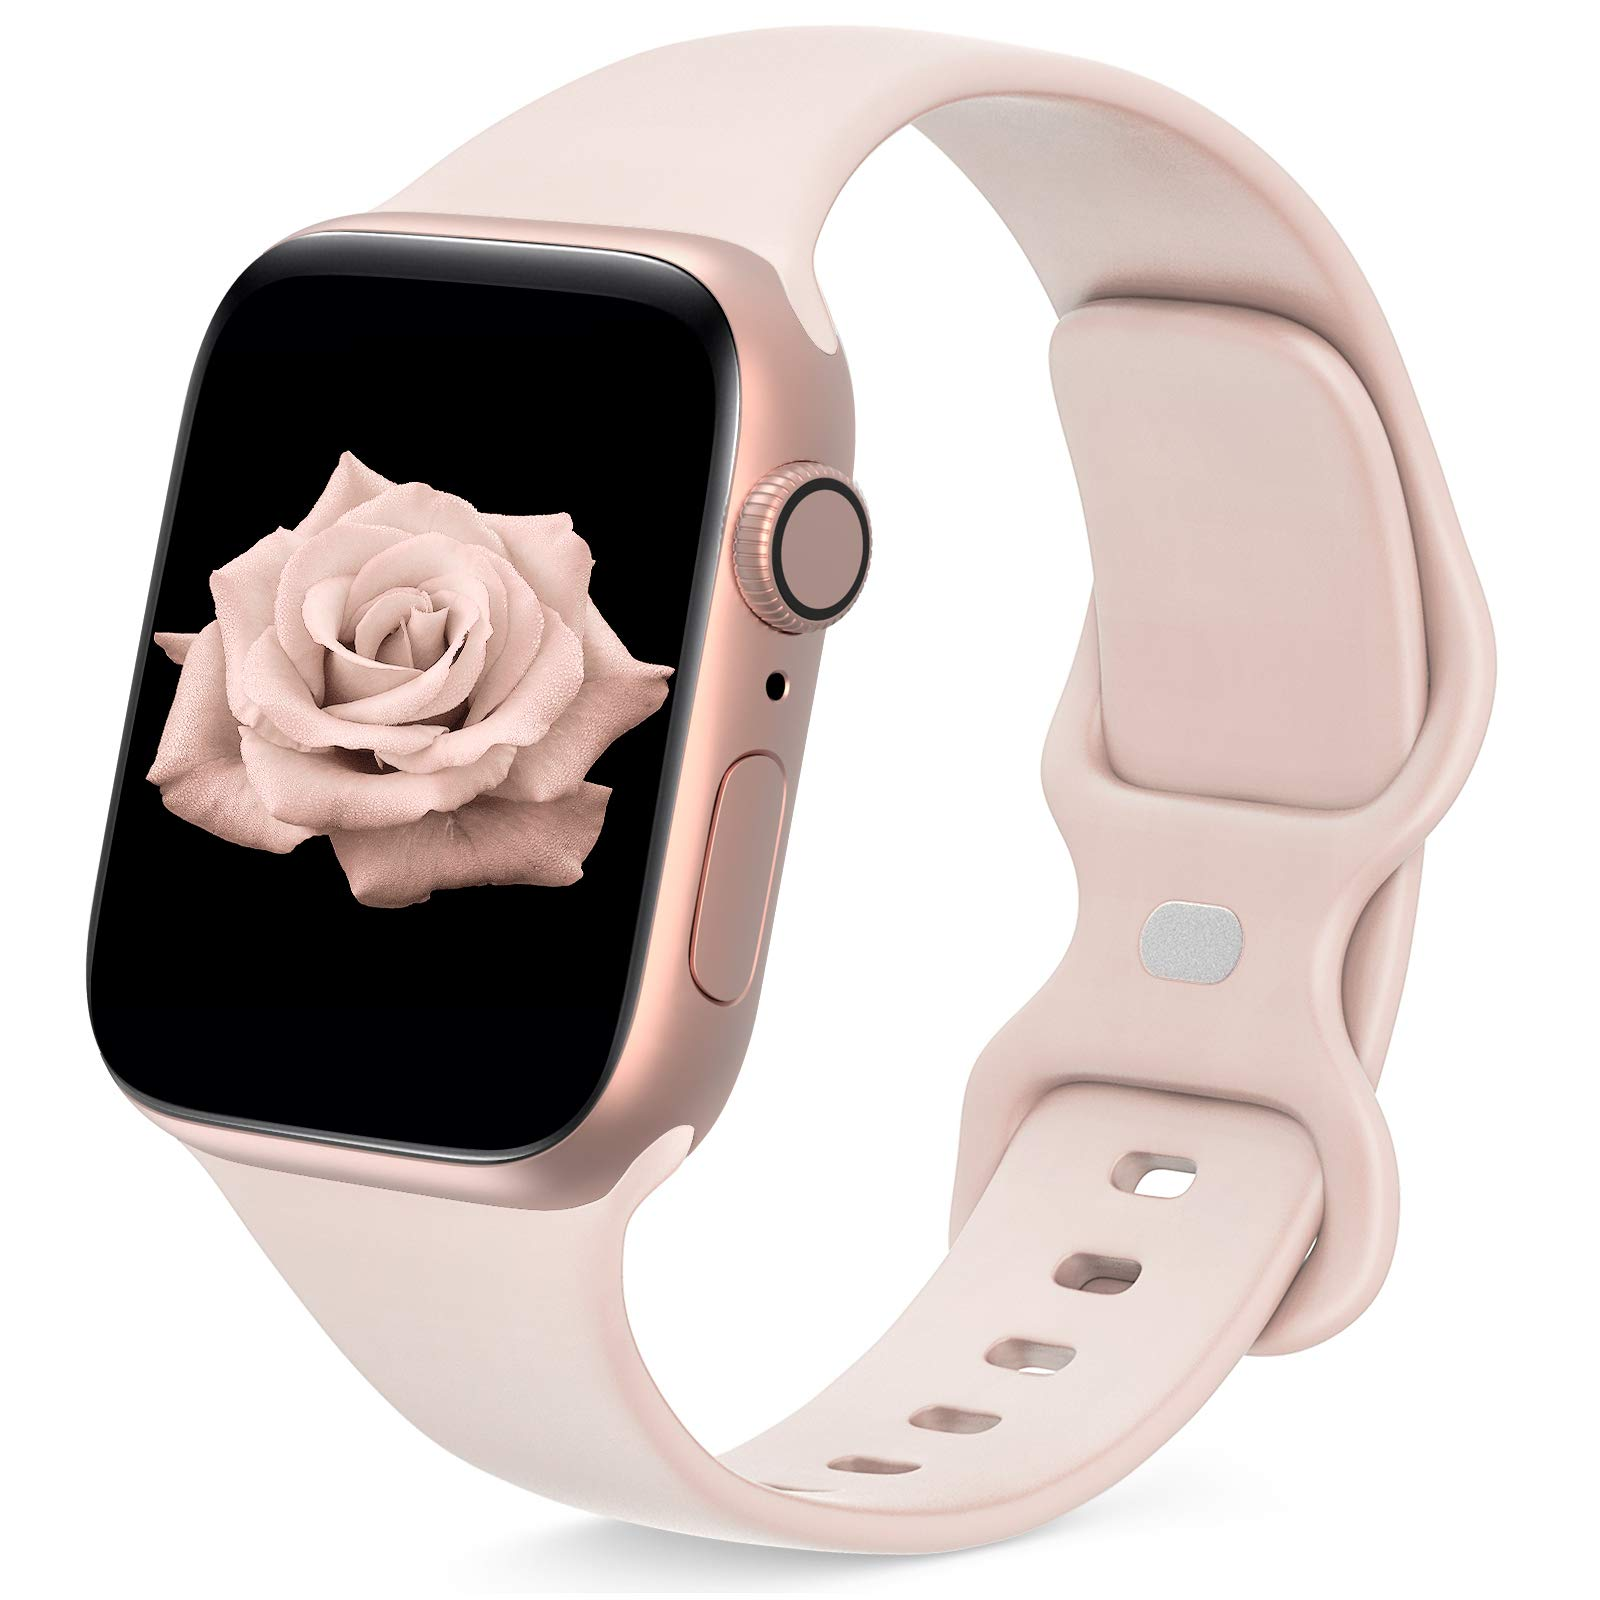 JINGMAX Sport Band Compatible with Apple Watch Band 38mm 40mm 42mm 44mm for Women Men, Soft Silicone Strap Replacement Wristband for iwatch Series SE/6/5/4/3/2/1